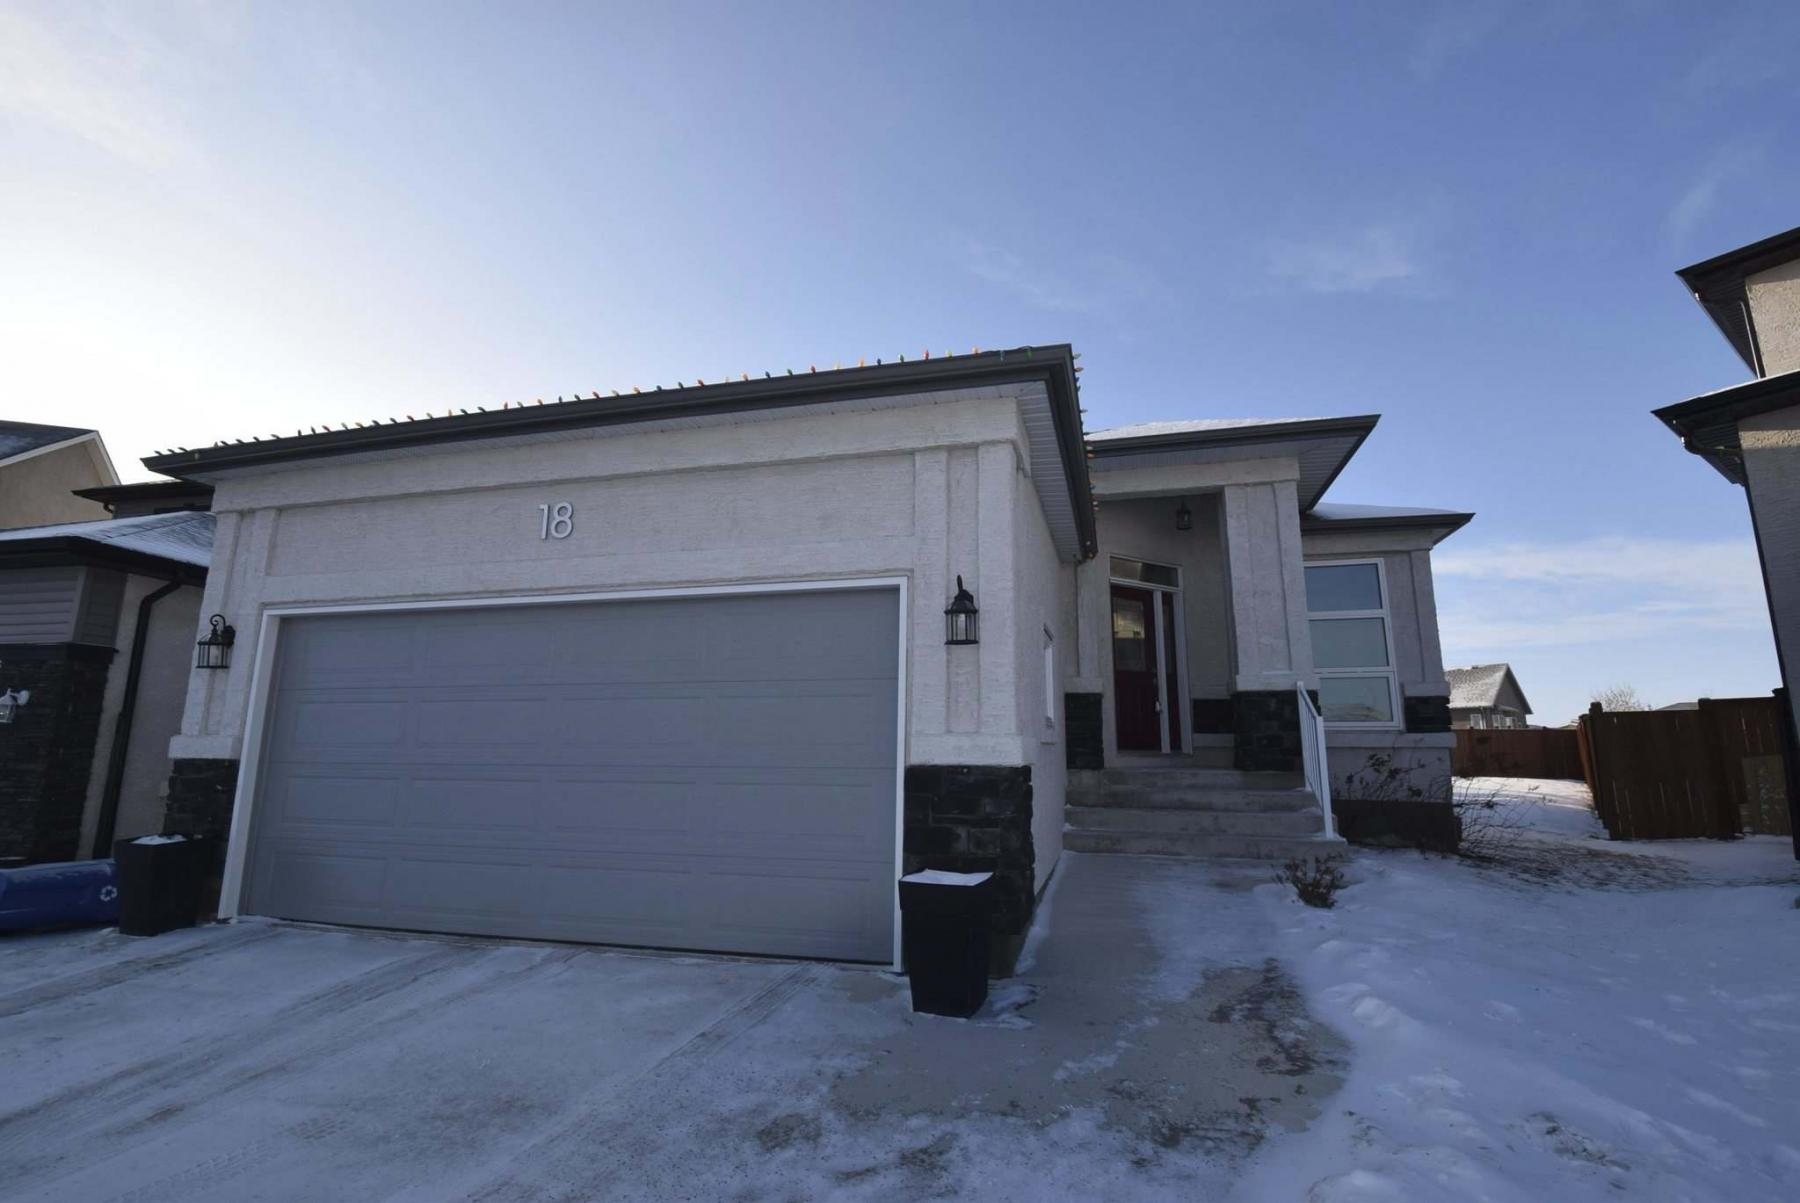 <p>Photos by Todd Lewys / Winnipeg Free Press</p><p>An attached two-car garage adds to the functionality of of this South Pointe home without adding to the purchase price.</p>